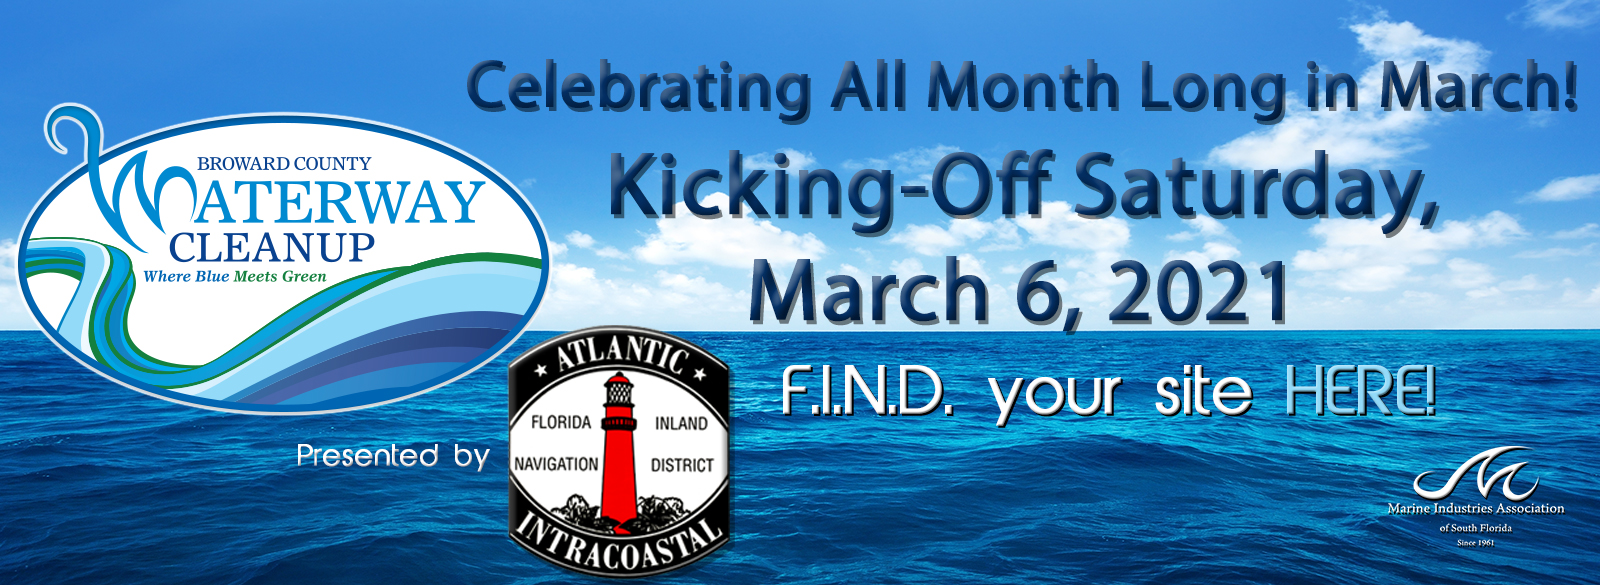 Upcoming Event: Broward County Waterway Cleanup